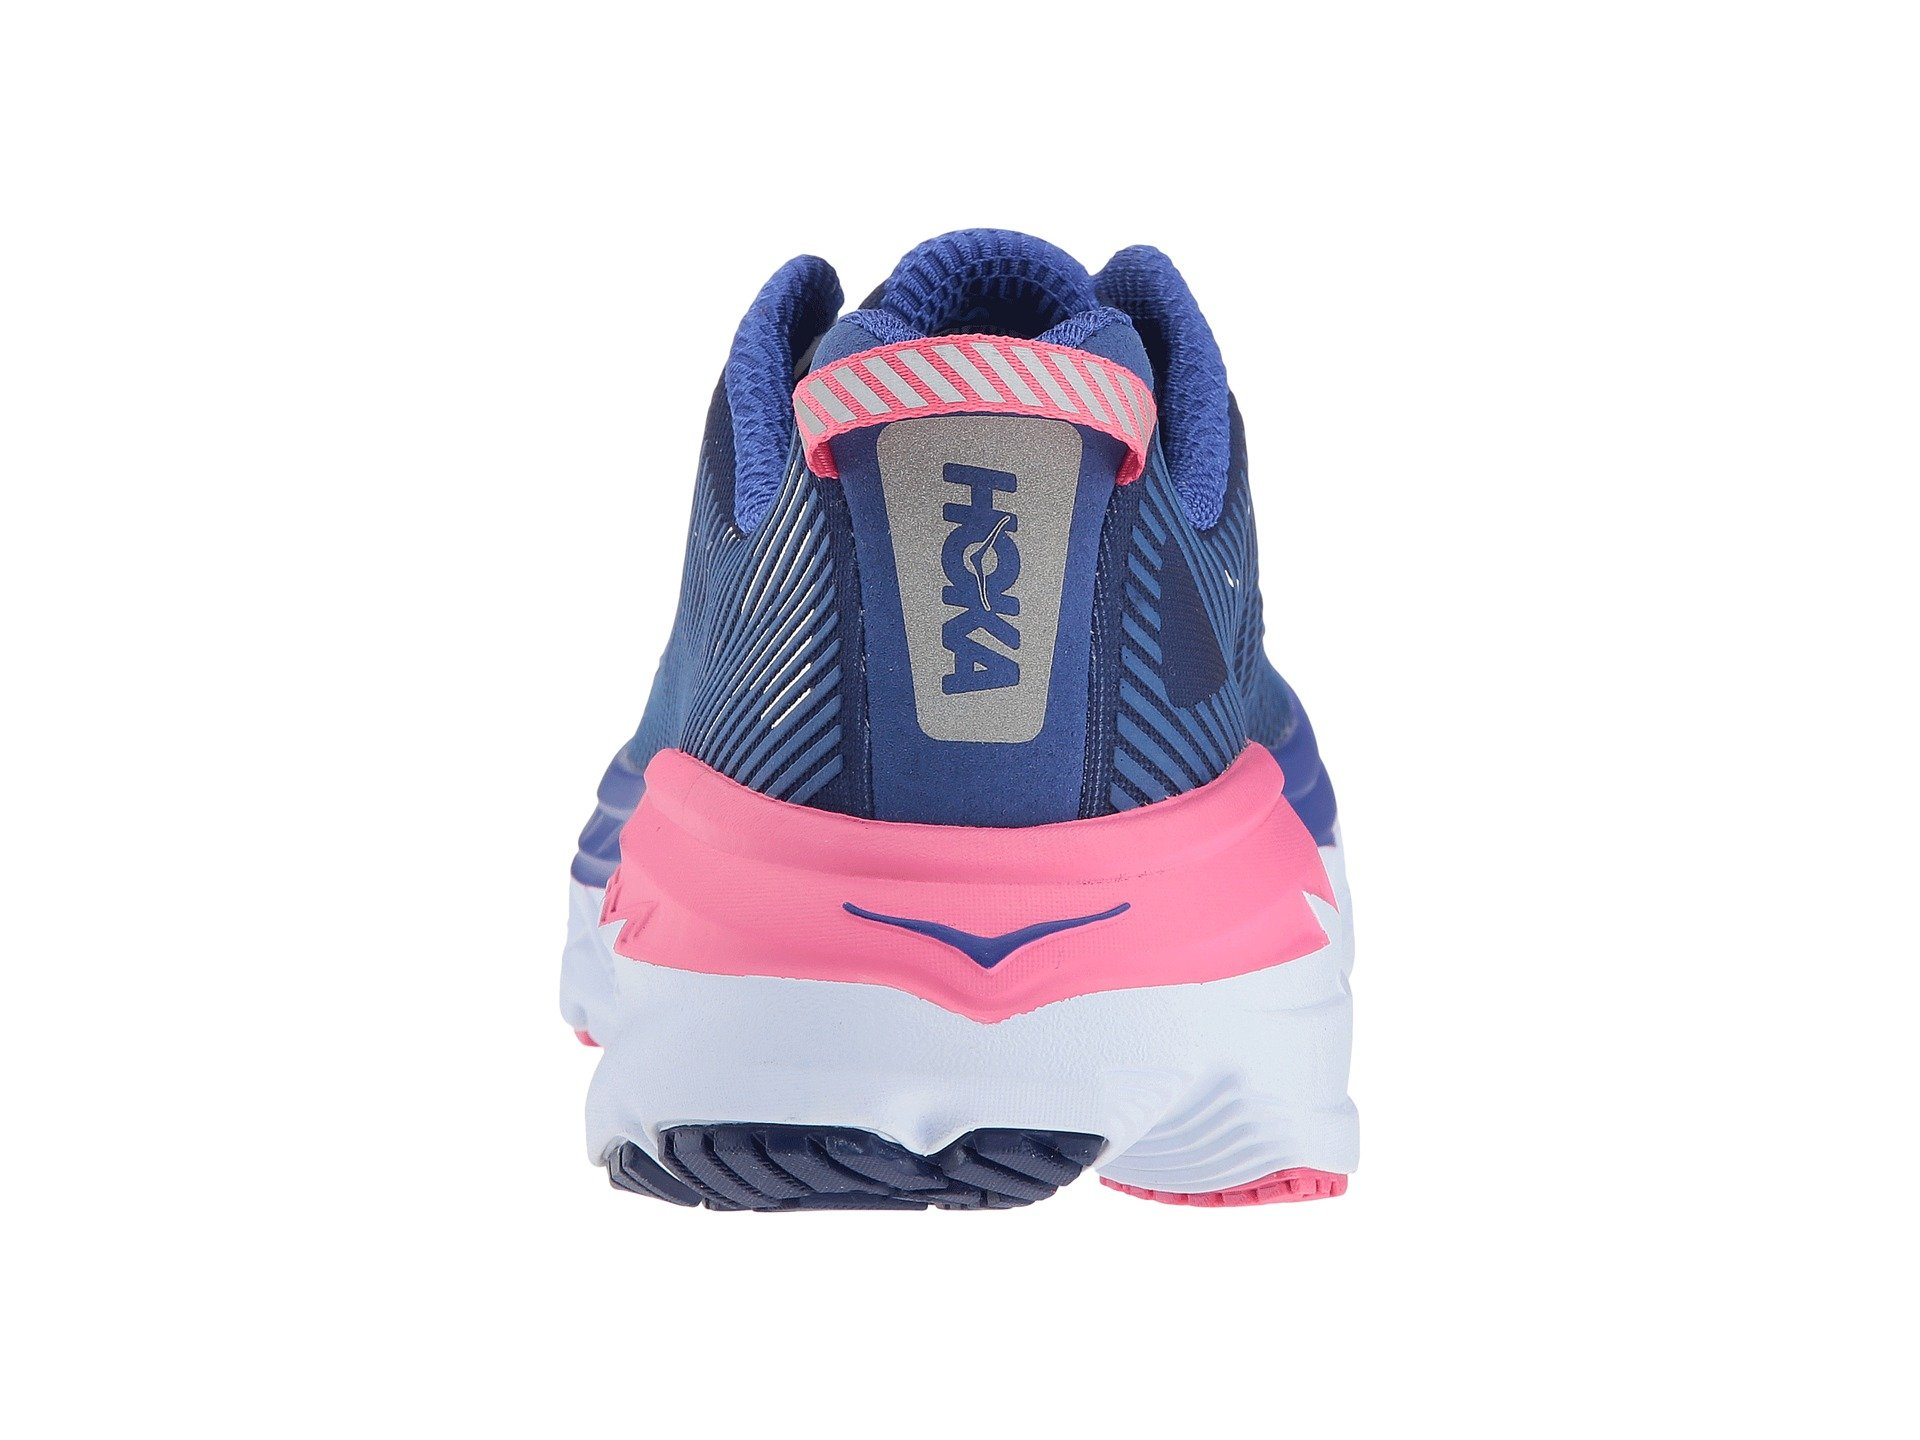 HOKA ONE ONE BONDI 5 W - Blueprint / Surf The Web